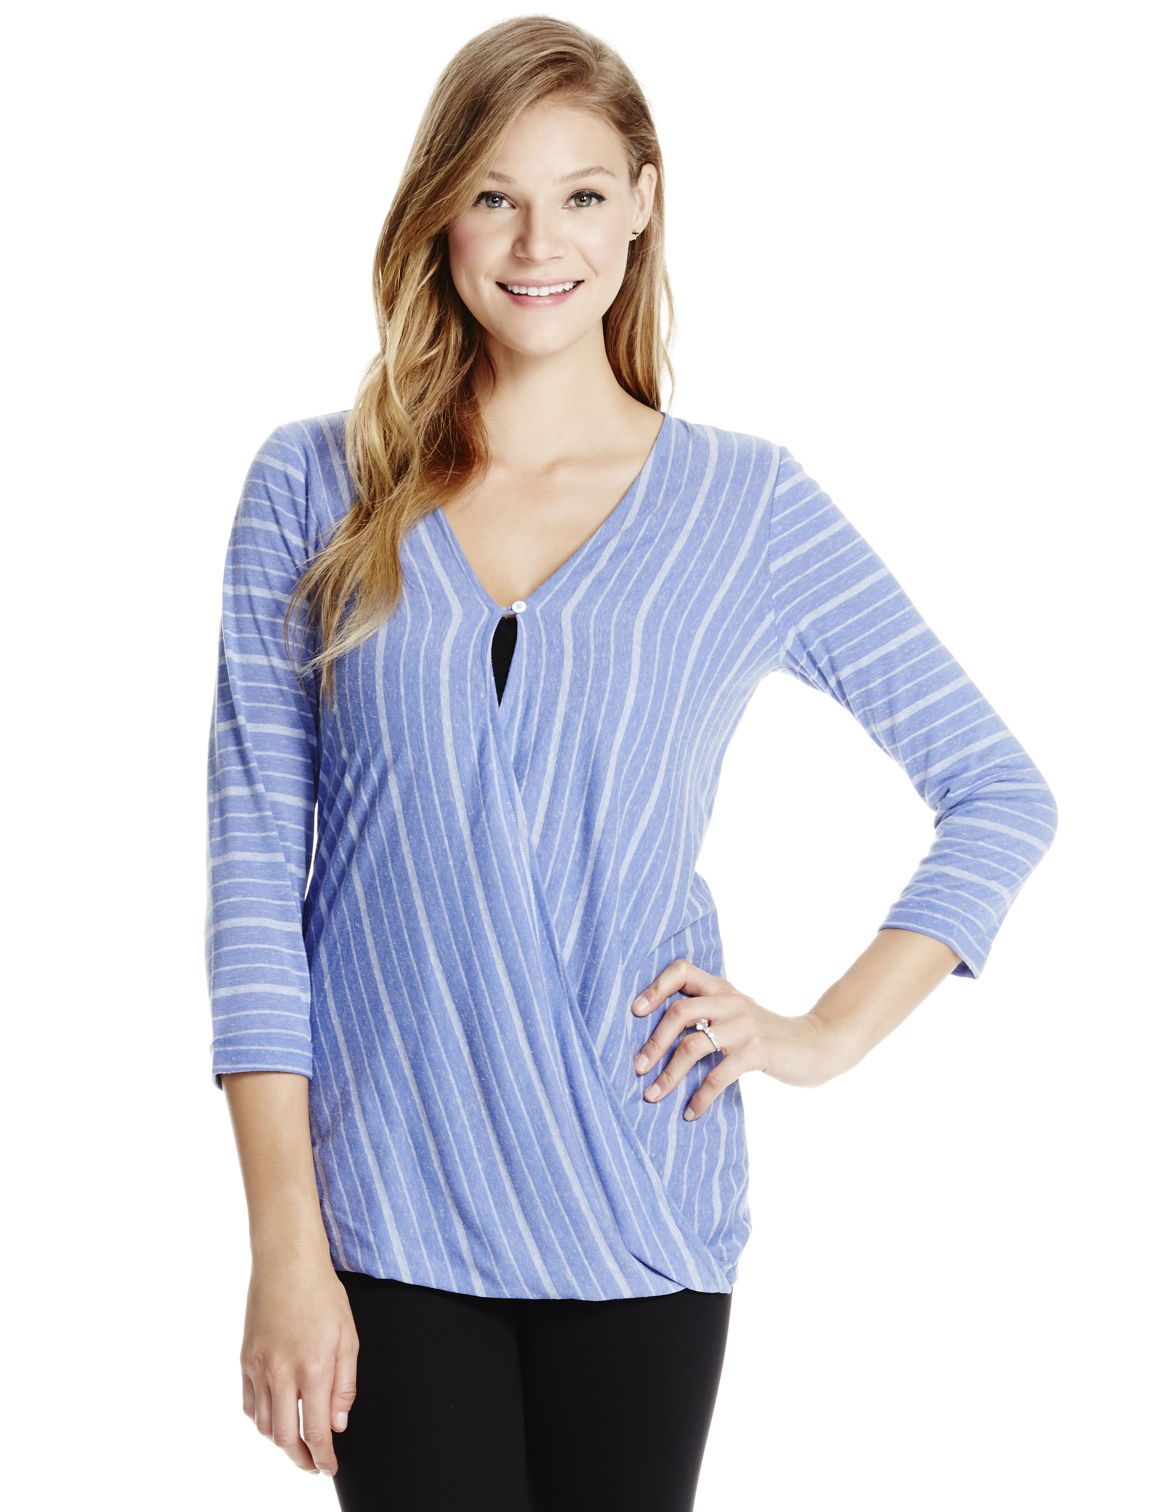 43722b1388377 Periwinkle stripes | 3/4 sleeve pull over wrap nursing top by Jessica  Simpson available at Destination Maternity